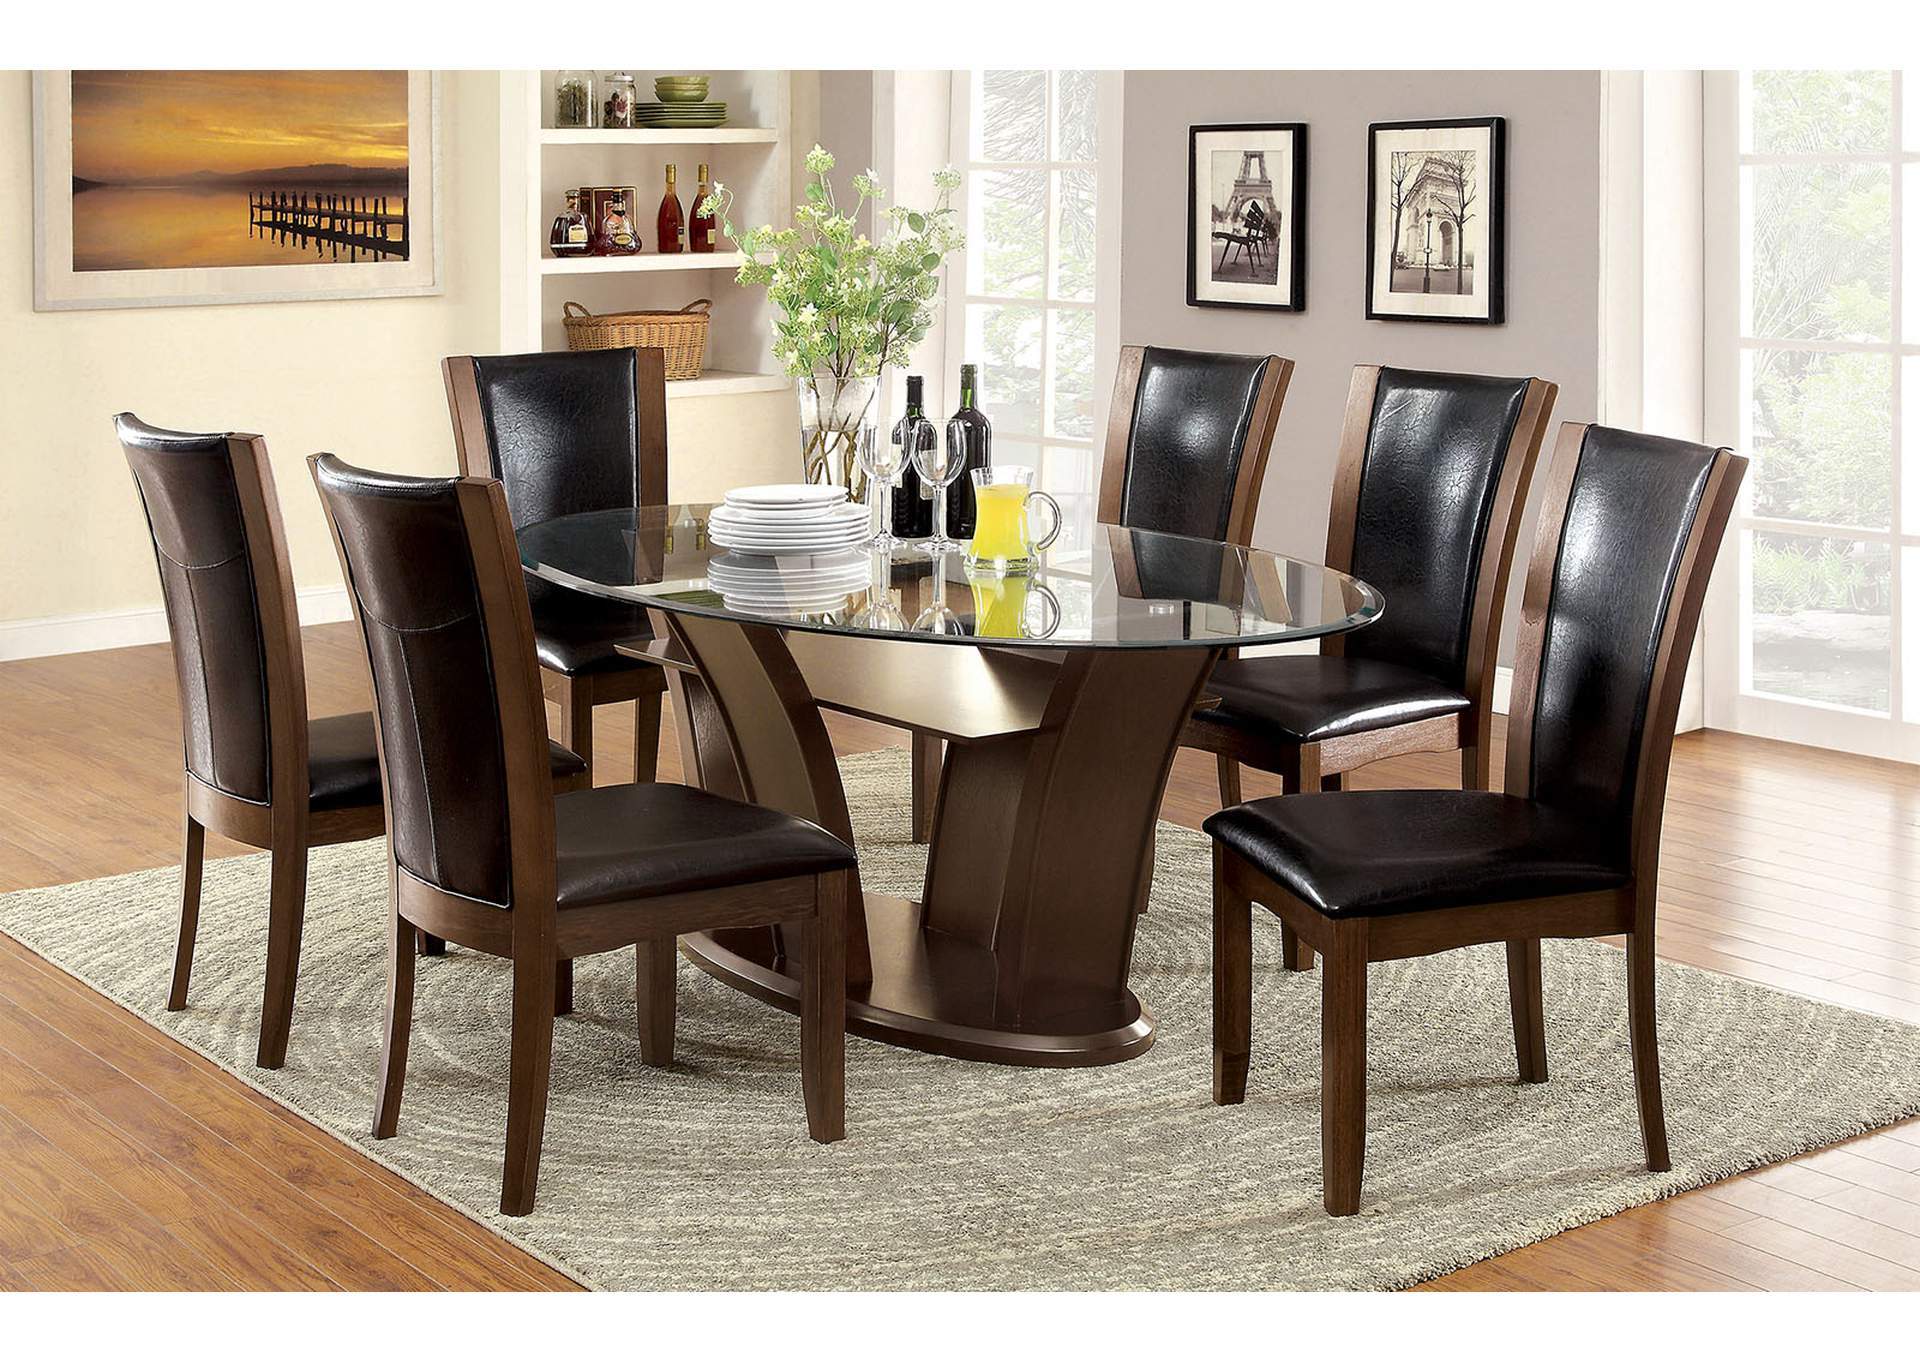 69de6f2bbaf6f2 Manhattan l Oval Glass Top Dining Table w/4 Side Chairs,Furniture of America